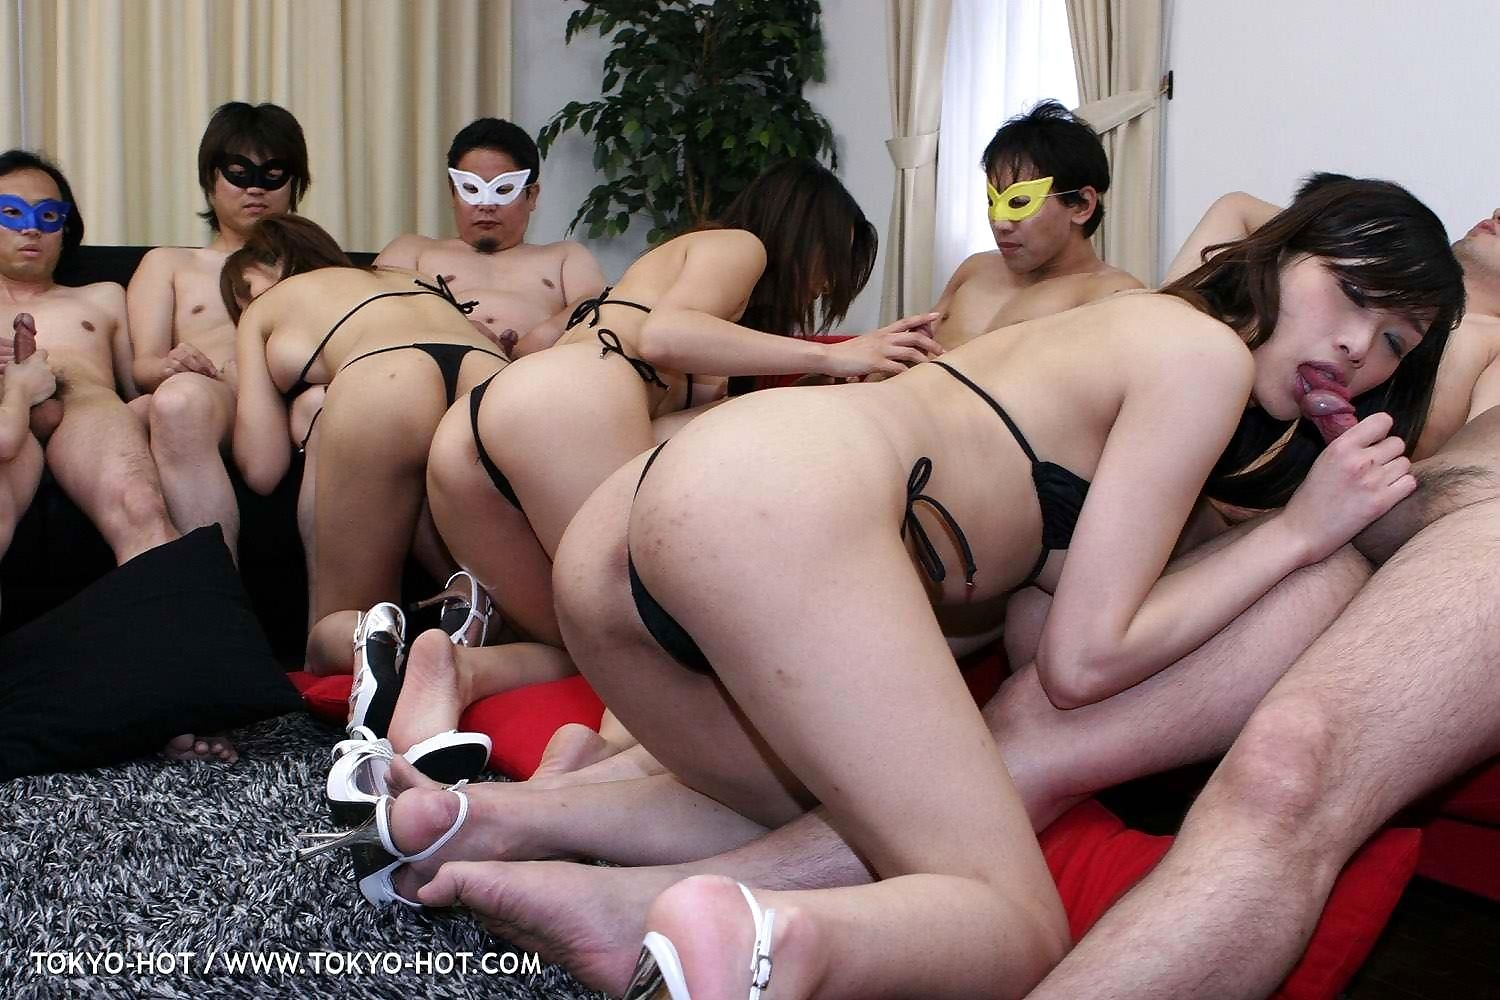 Asian bukkake orgy porn pictures - part 1827